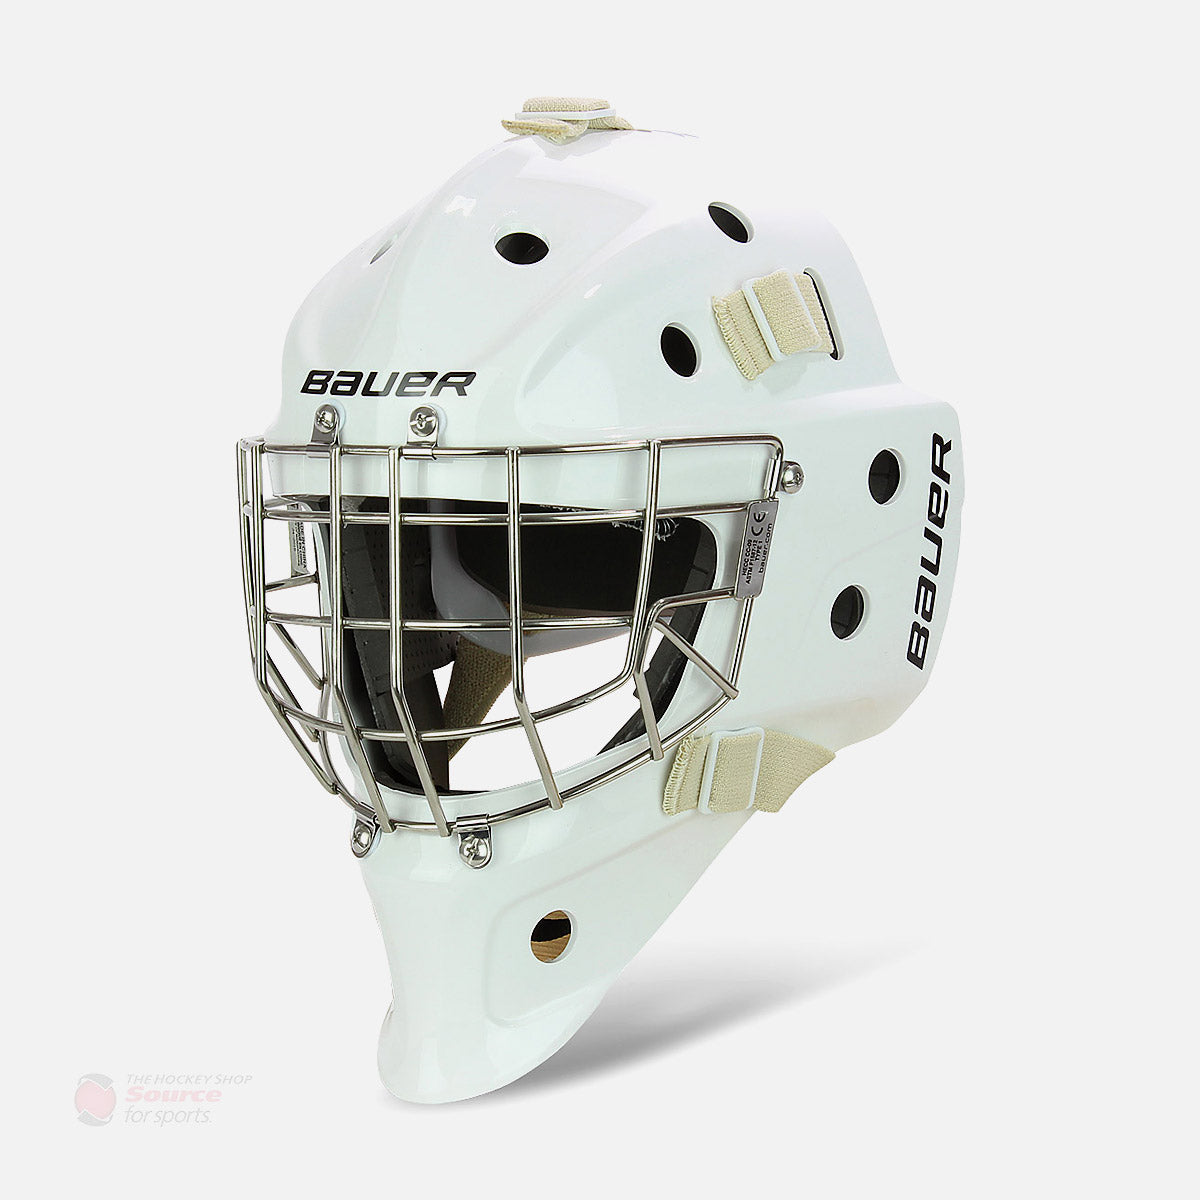 Bauer Profile 940X Senior Goalie Mask - White